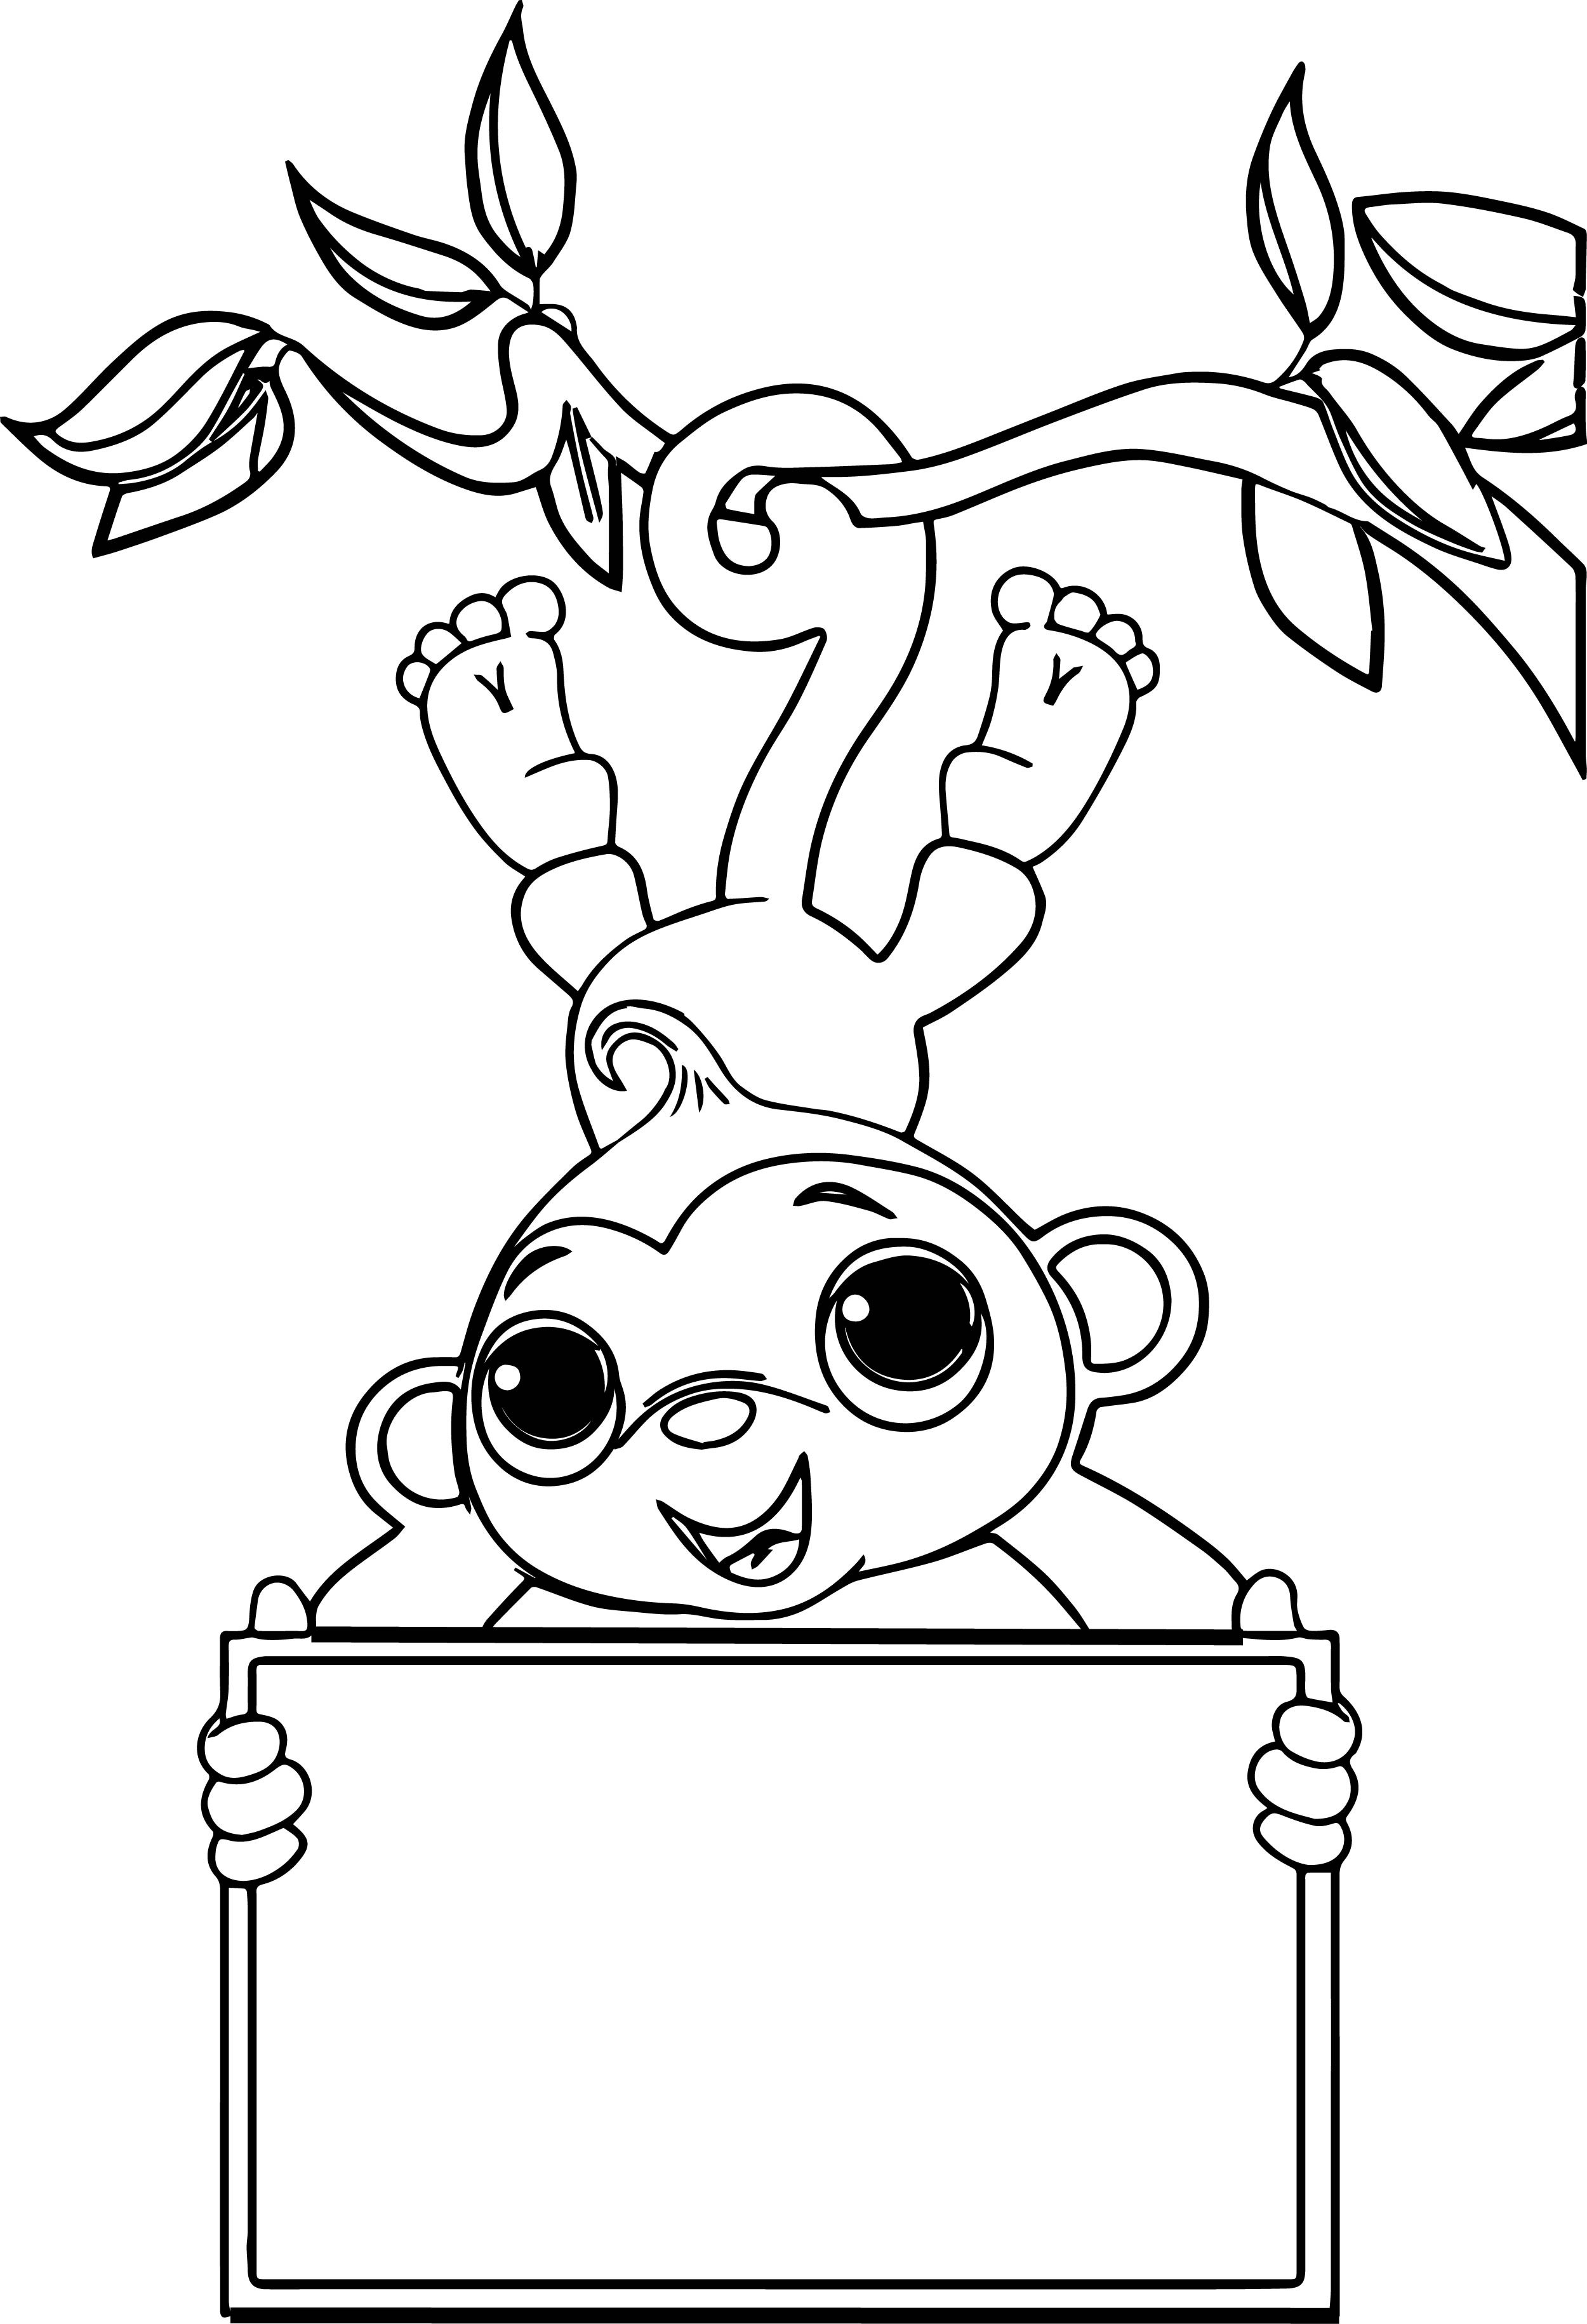 2500x3660 Diego Coloring Pages With Monkey For Kids Luxury Zoo Free Sock